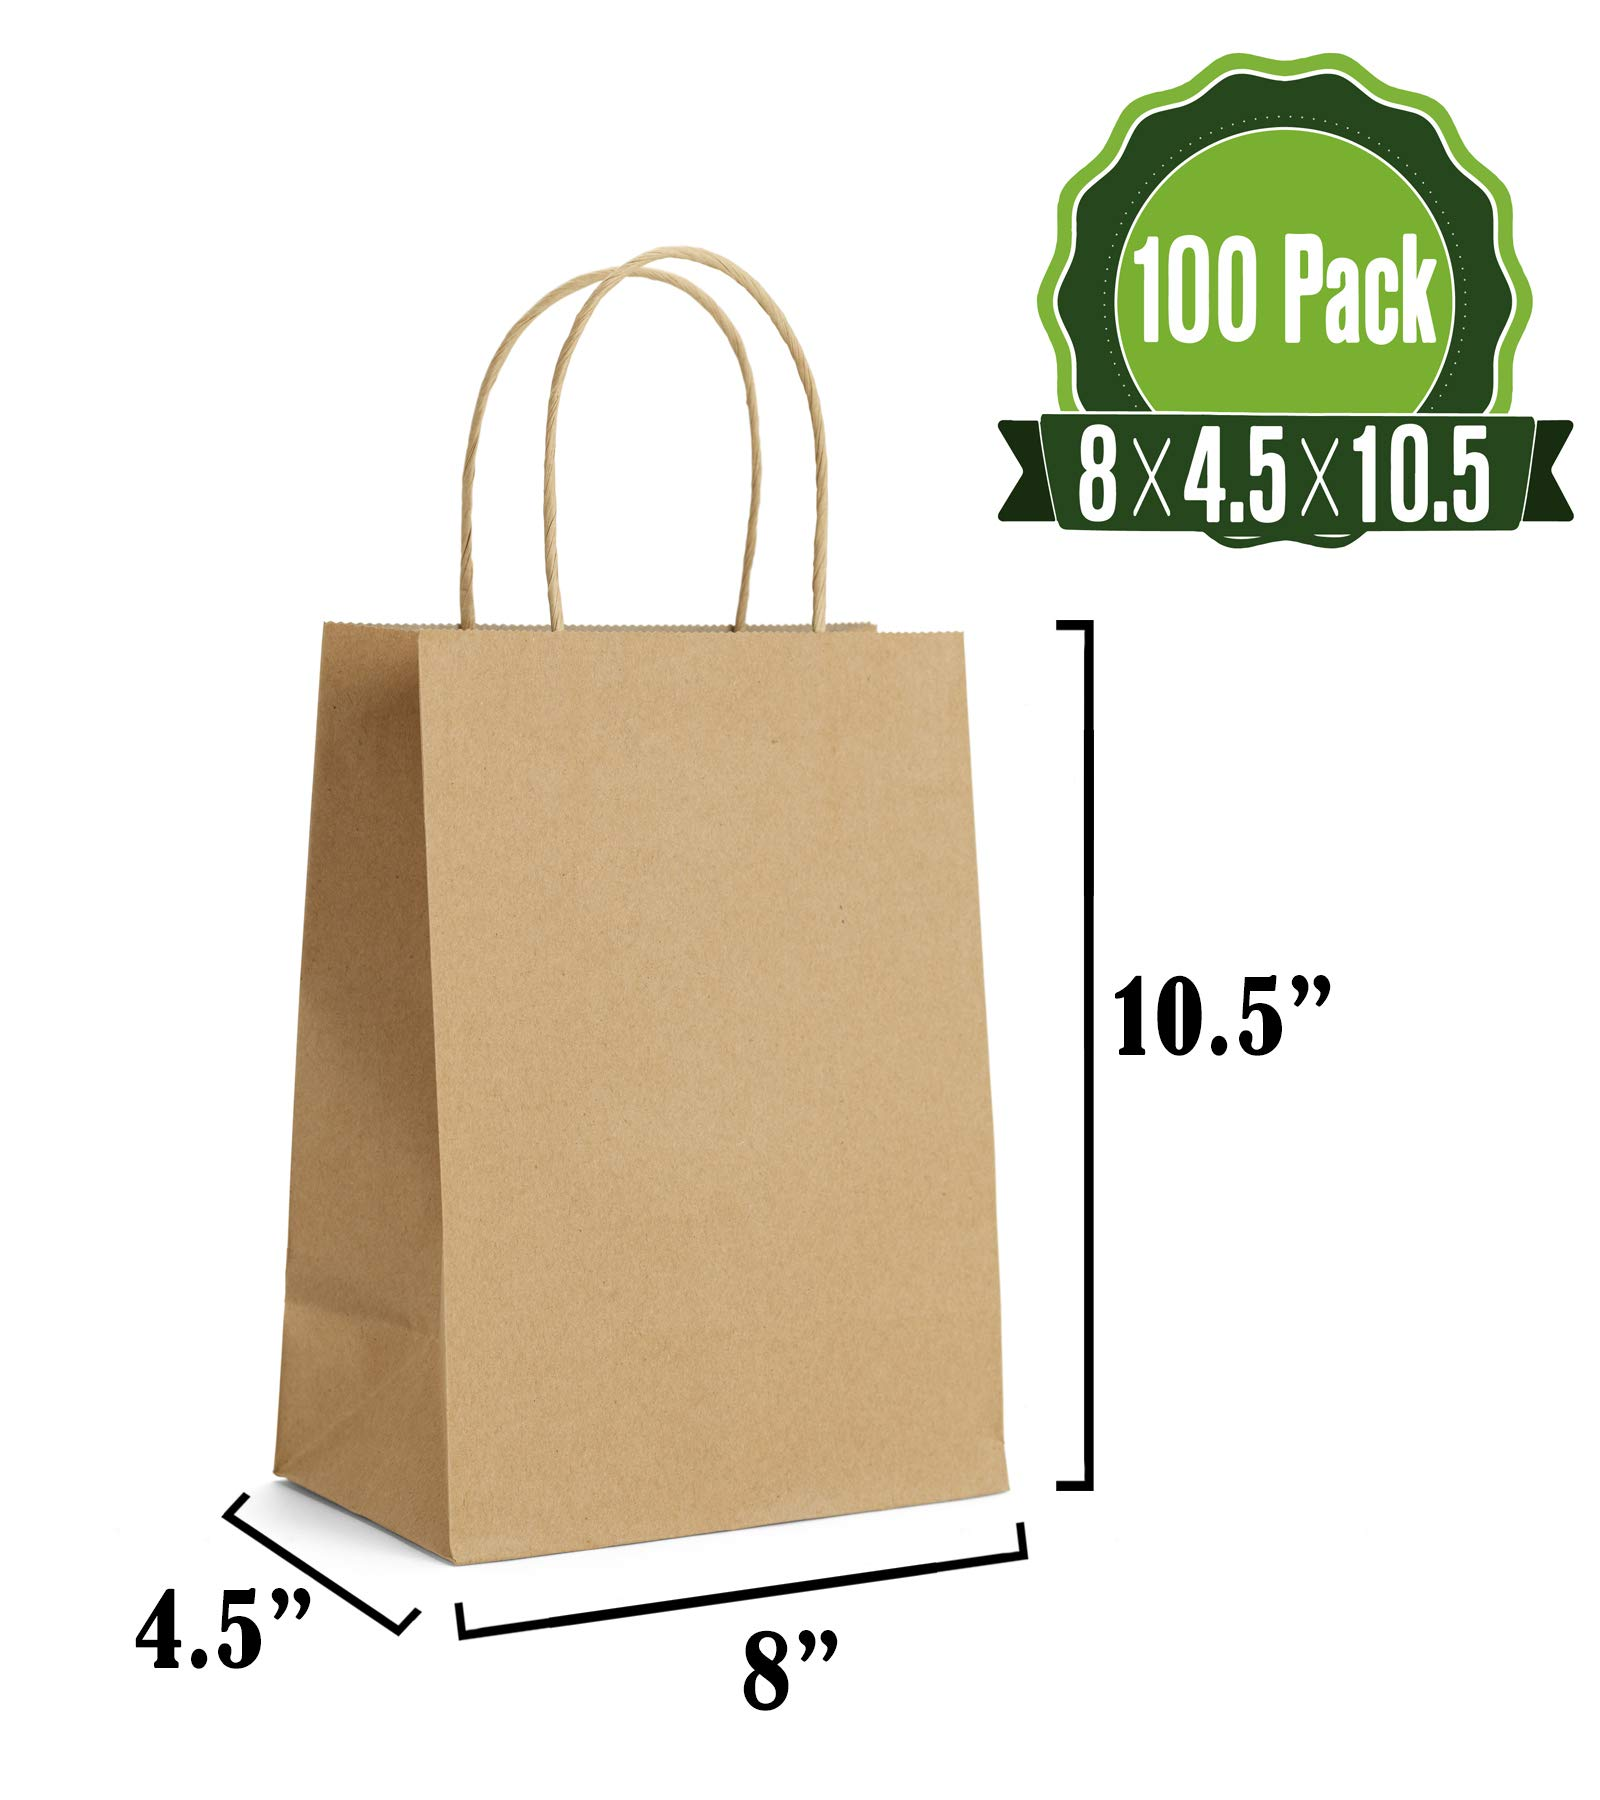 Brown Kraft Paper Gift Bags Bulk with Handles 8 X 4.5 X 10.5 [100Pcs]. Ideal for Shopping, Packaging, Retail, Party, Craft, Gifts, Wedding, Recycled, Business, Goody and Merchandise Bag by Shoplenty